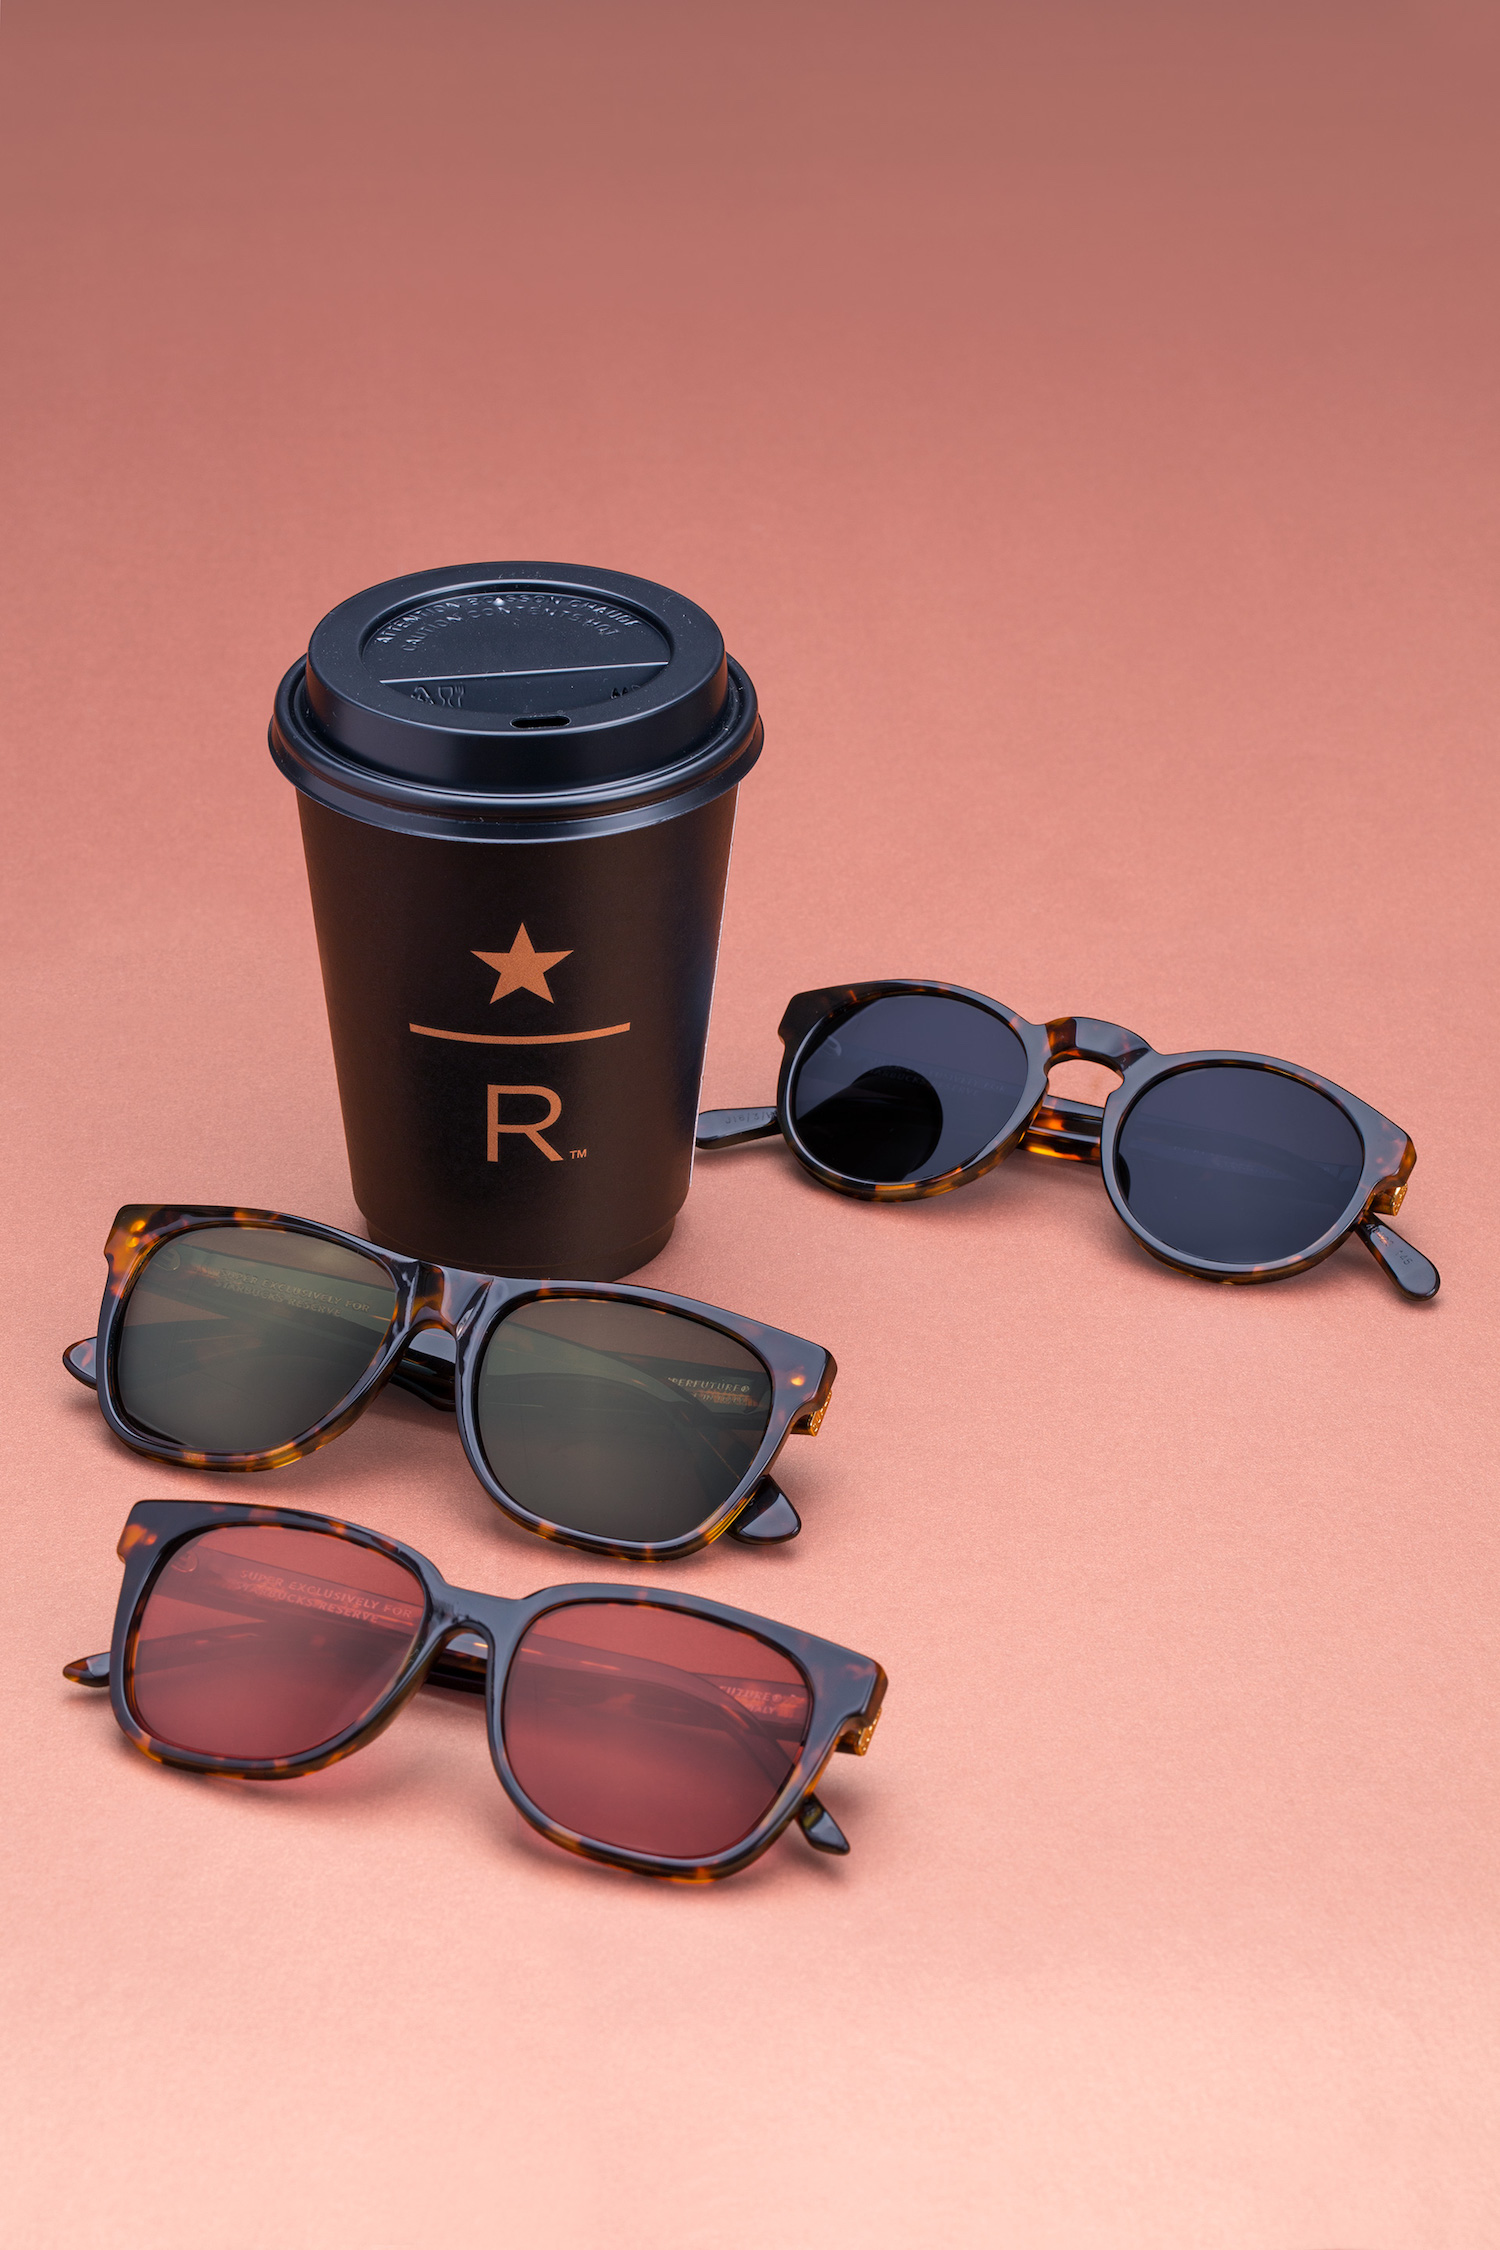 SUPER by RETROSUPERFUTURE Partner with Starbucks for Sunglasses Capsule